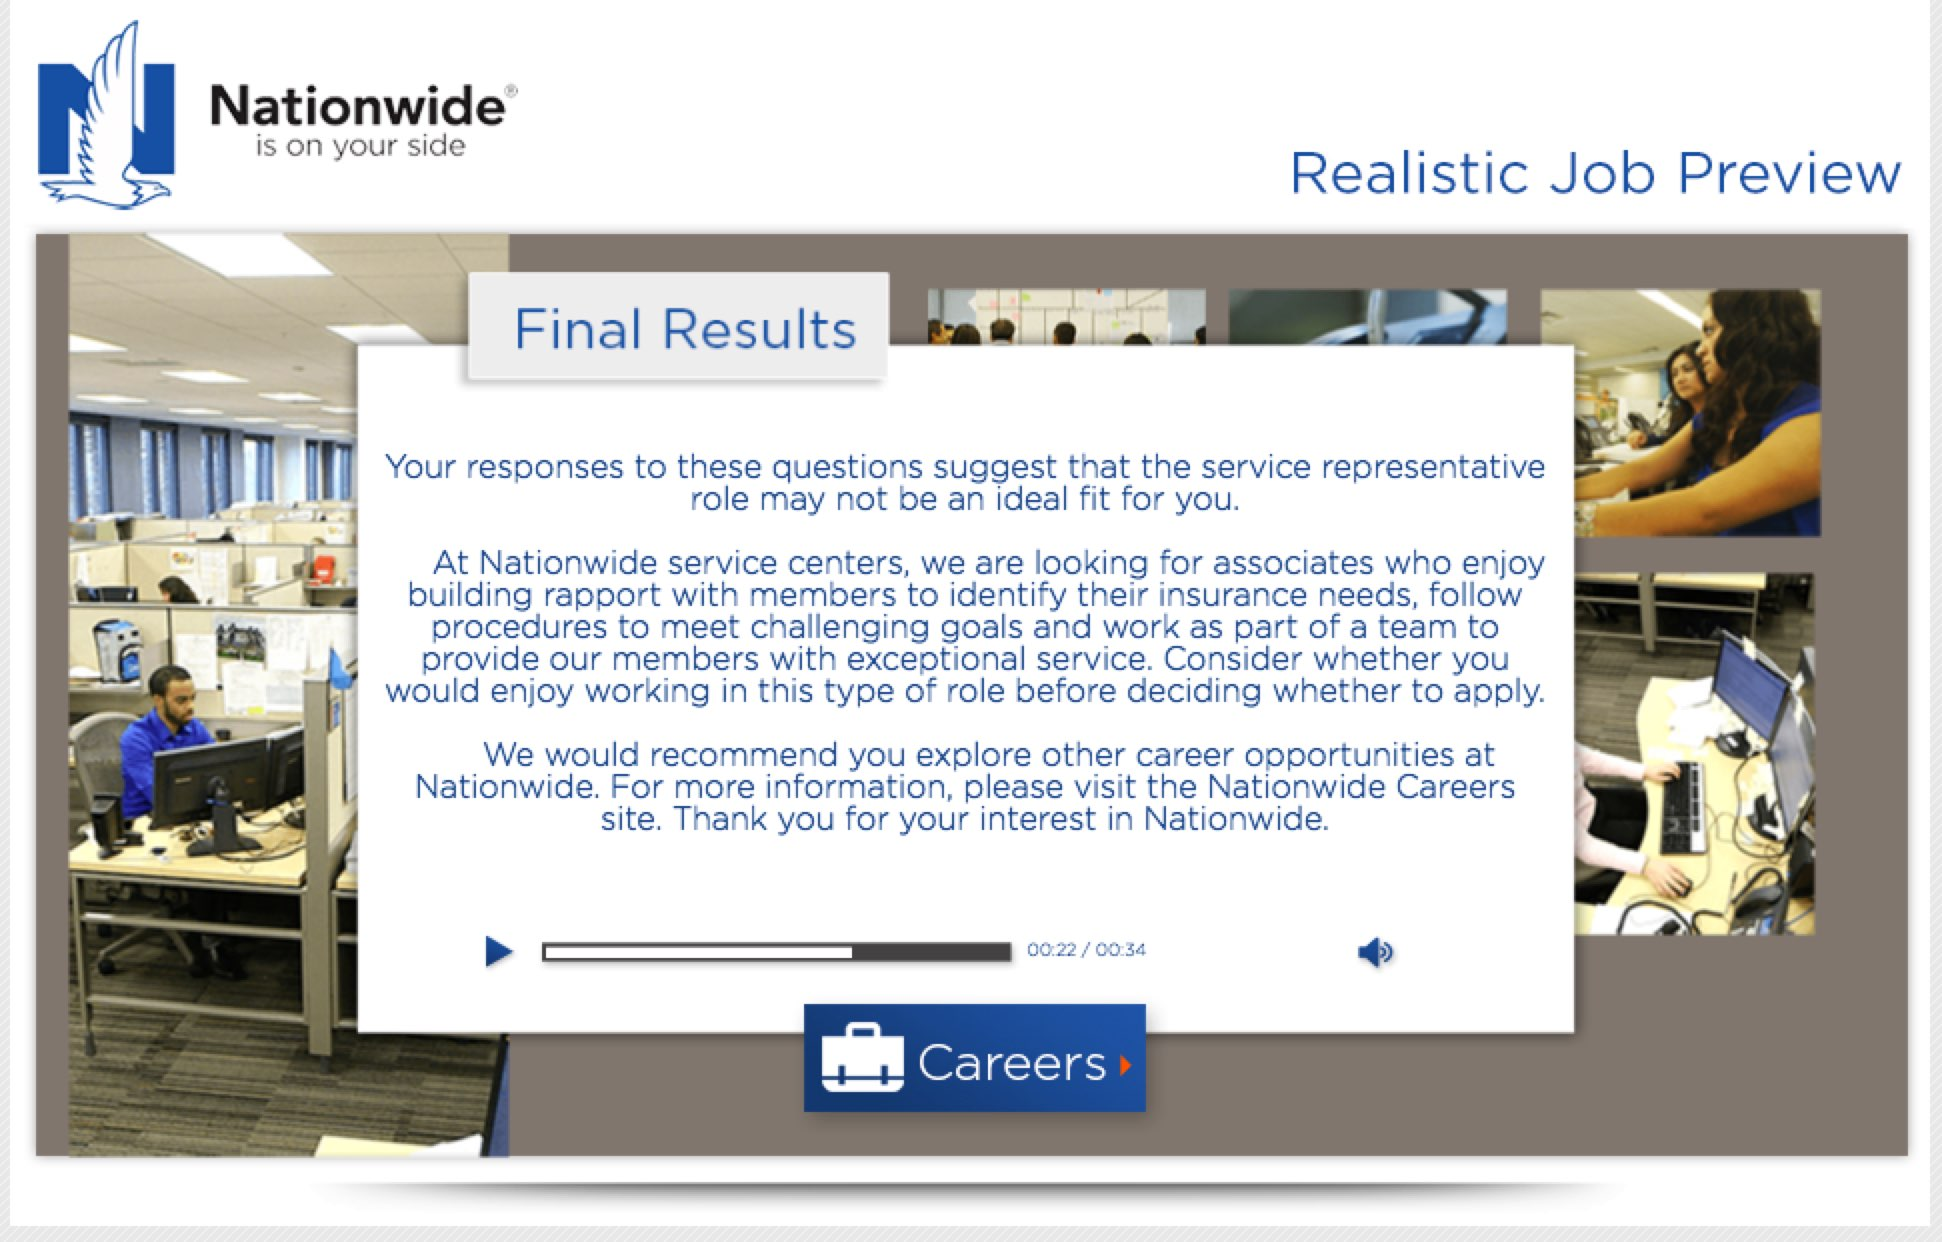 Realistic Job Preview -- Nationwide Insurance Customer Service Job Description | Ongig Blog